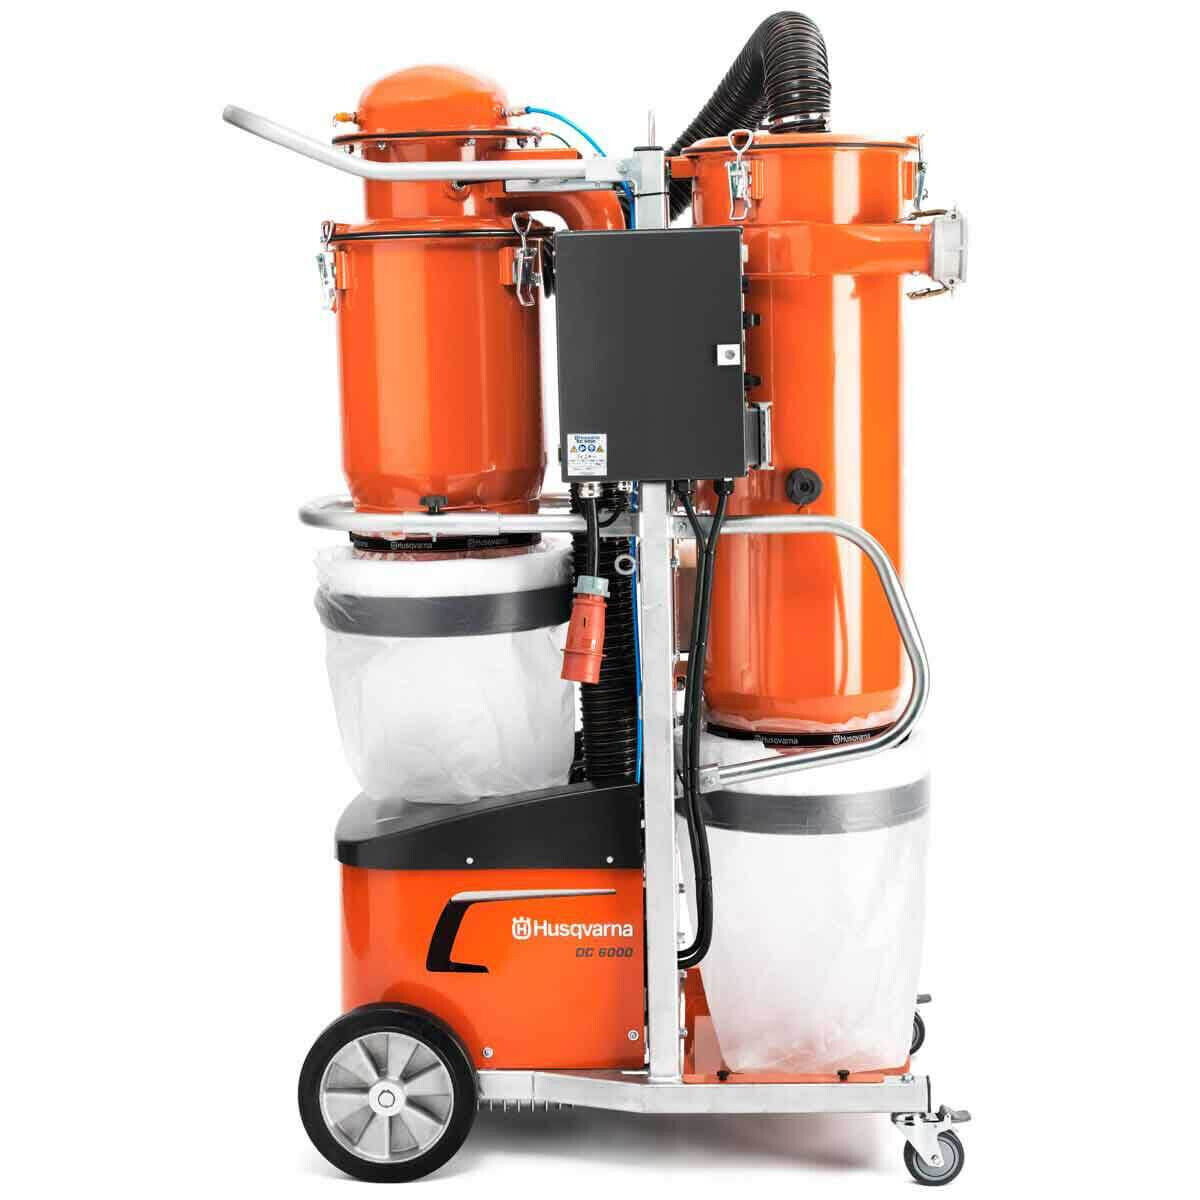 Husqvarna Industrial Dust Collector with Longopac